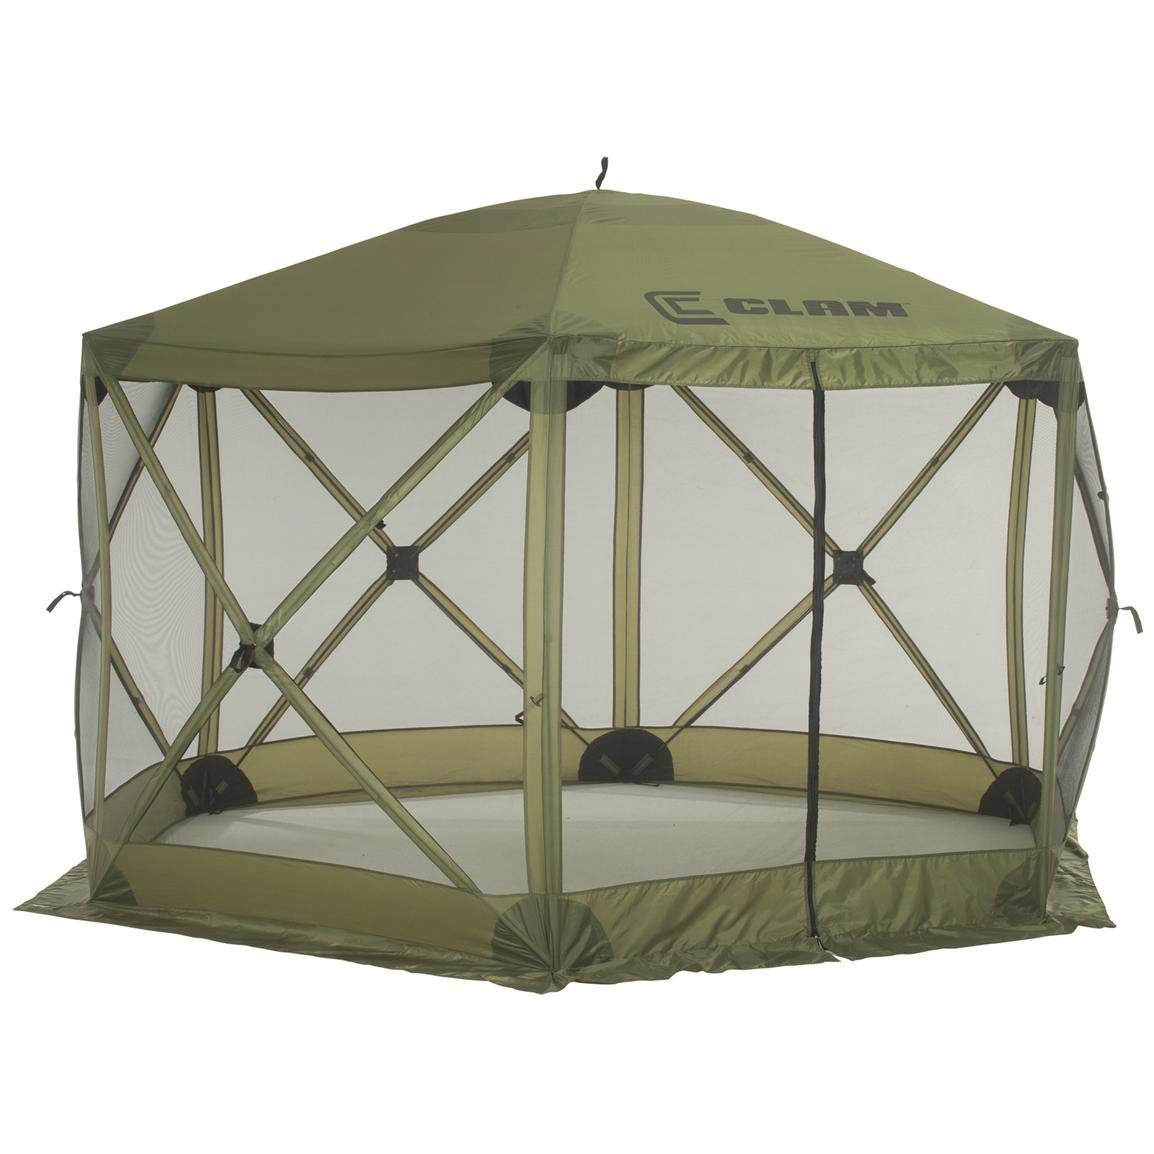 Cheap Screen Walls For 12x12 Canopy Find Screen Walls For